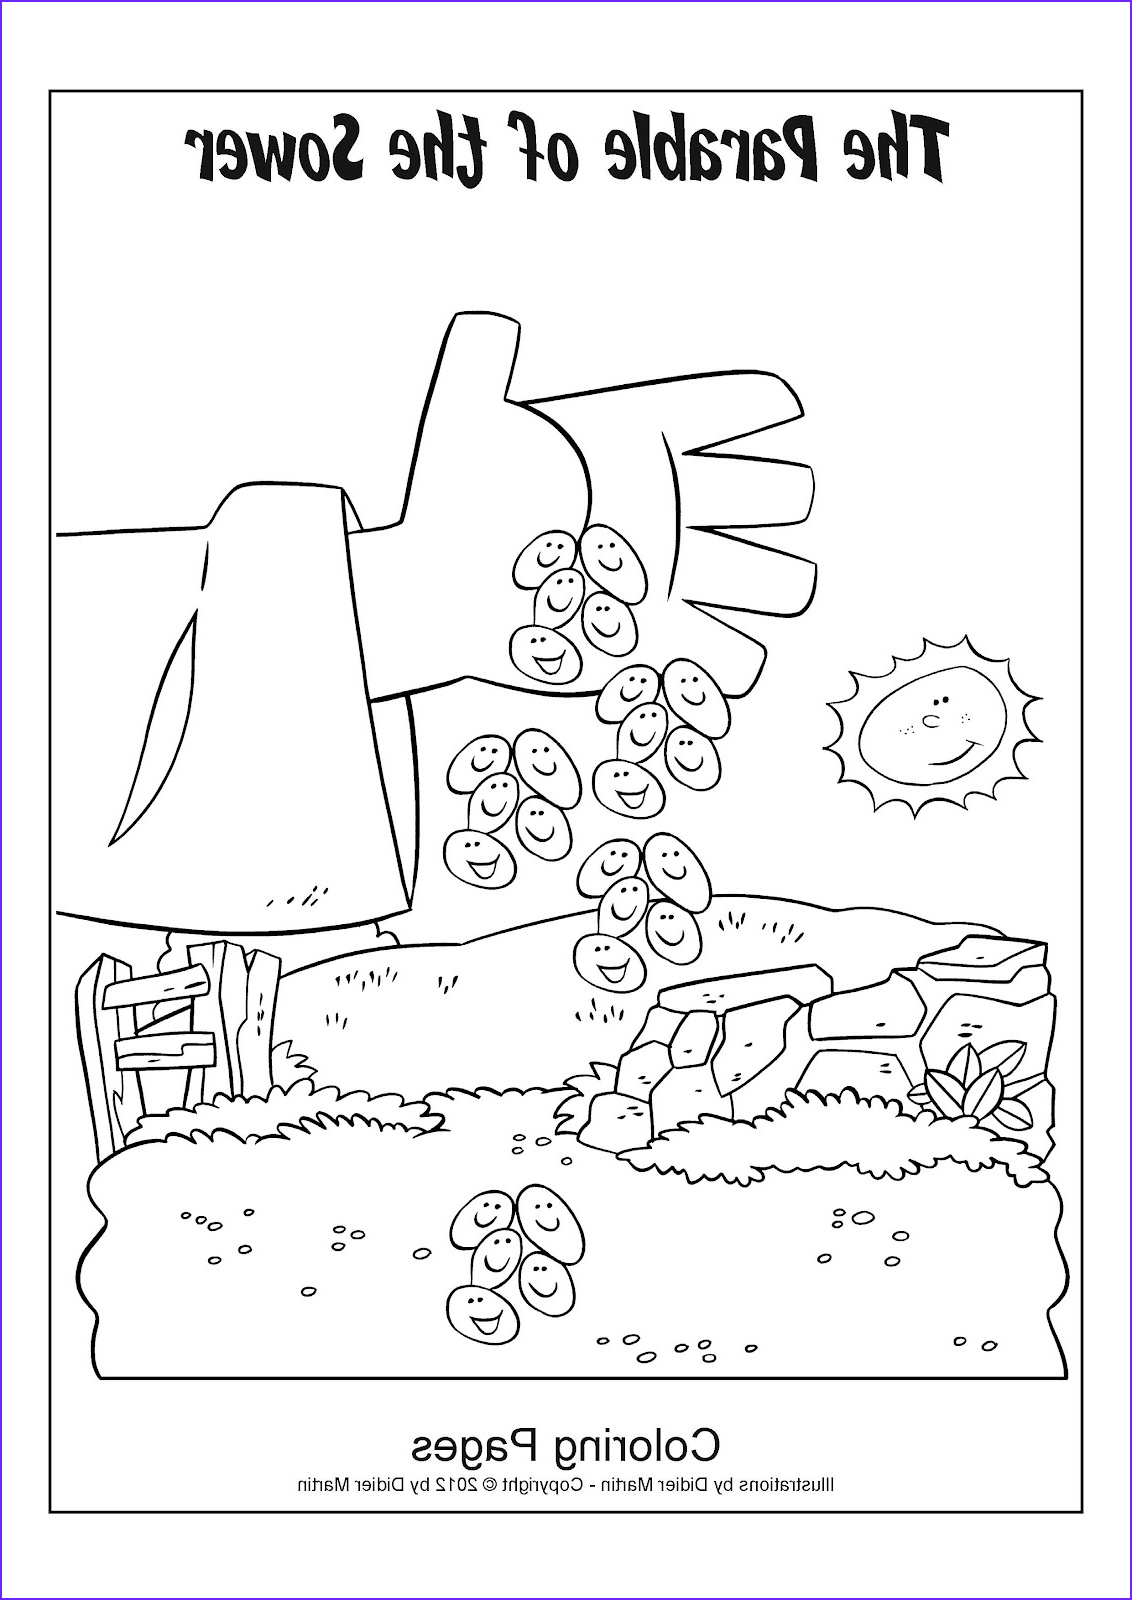 Parable Of the sower Coloring Page Inspirational Photos My Little House Bible Activity Pages the Parable Of the